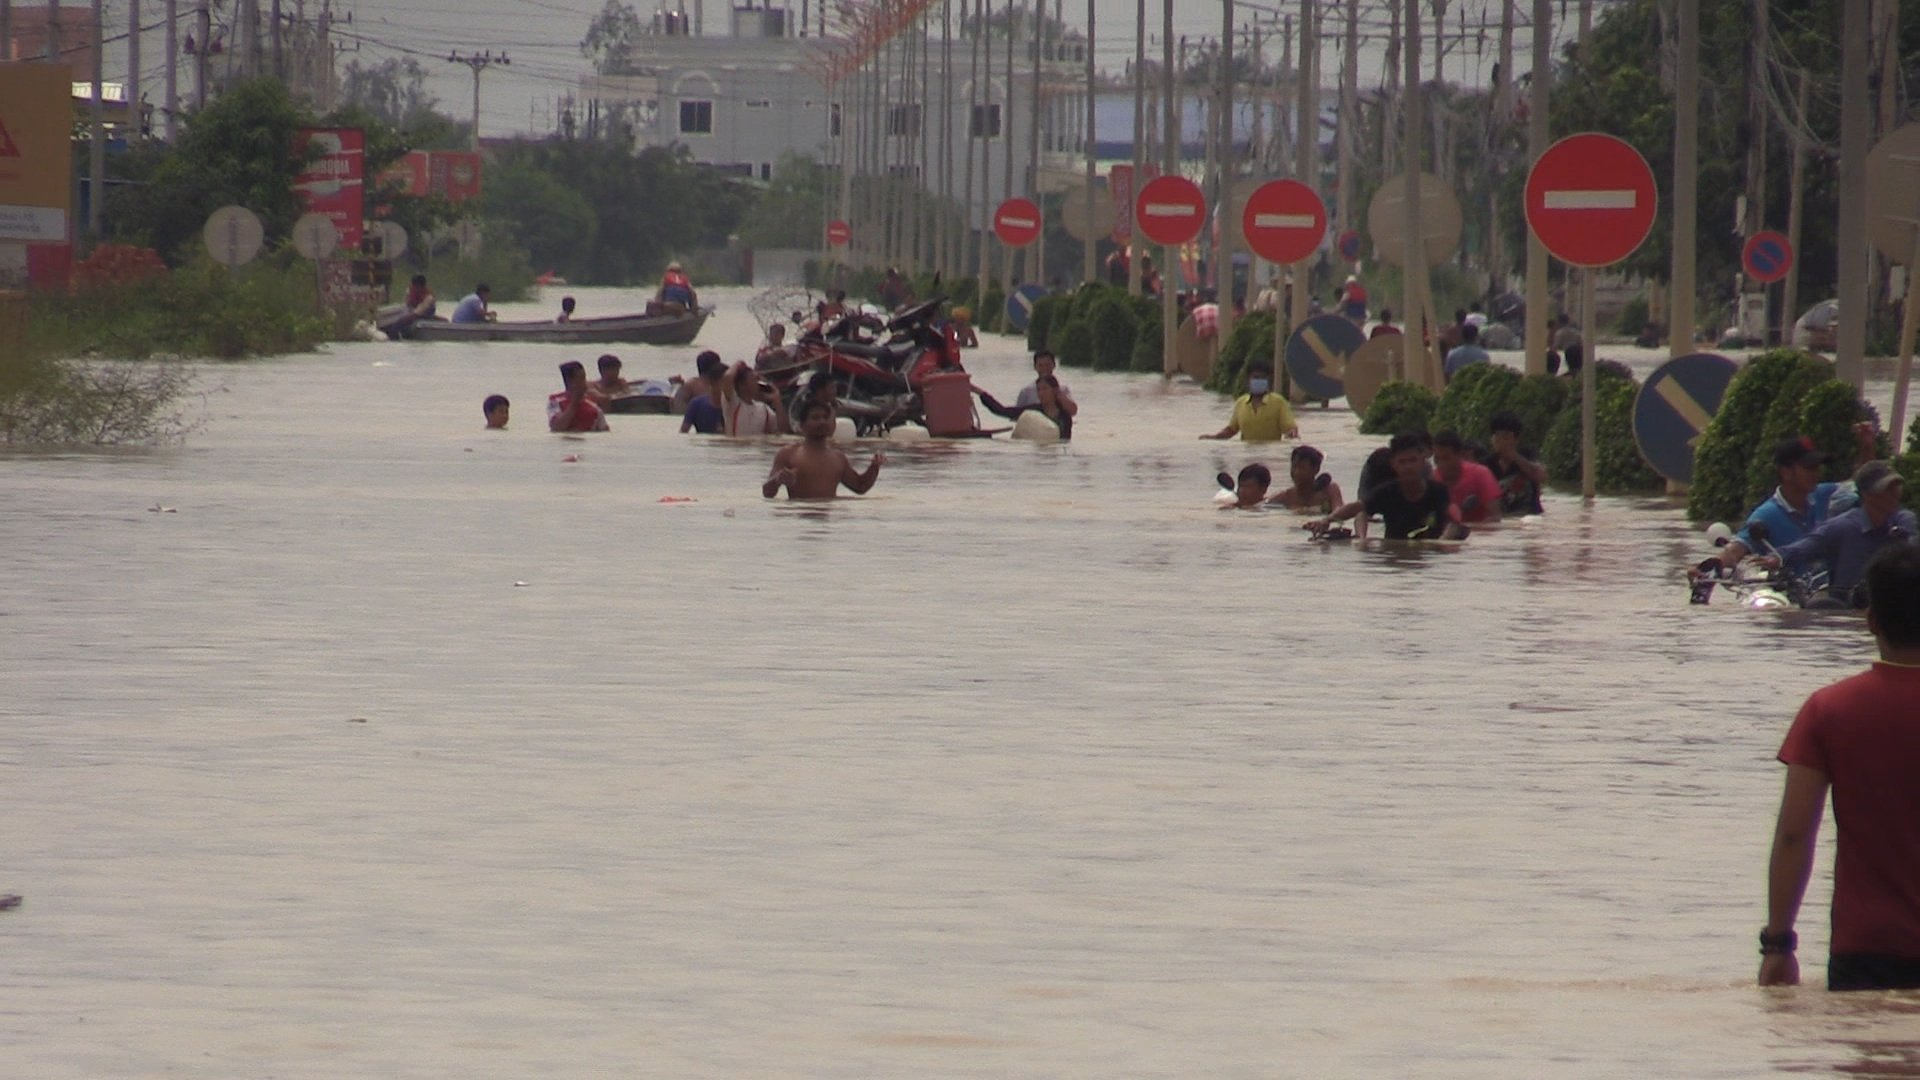 Residents wade through chest-high floodwaters in the streets of Phnom Penh, Oct. 15, 2020.